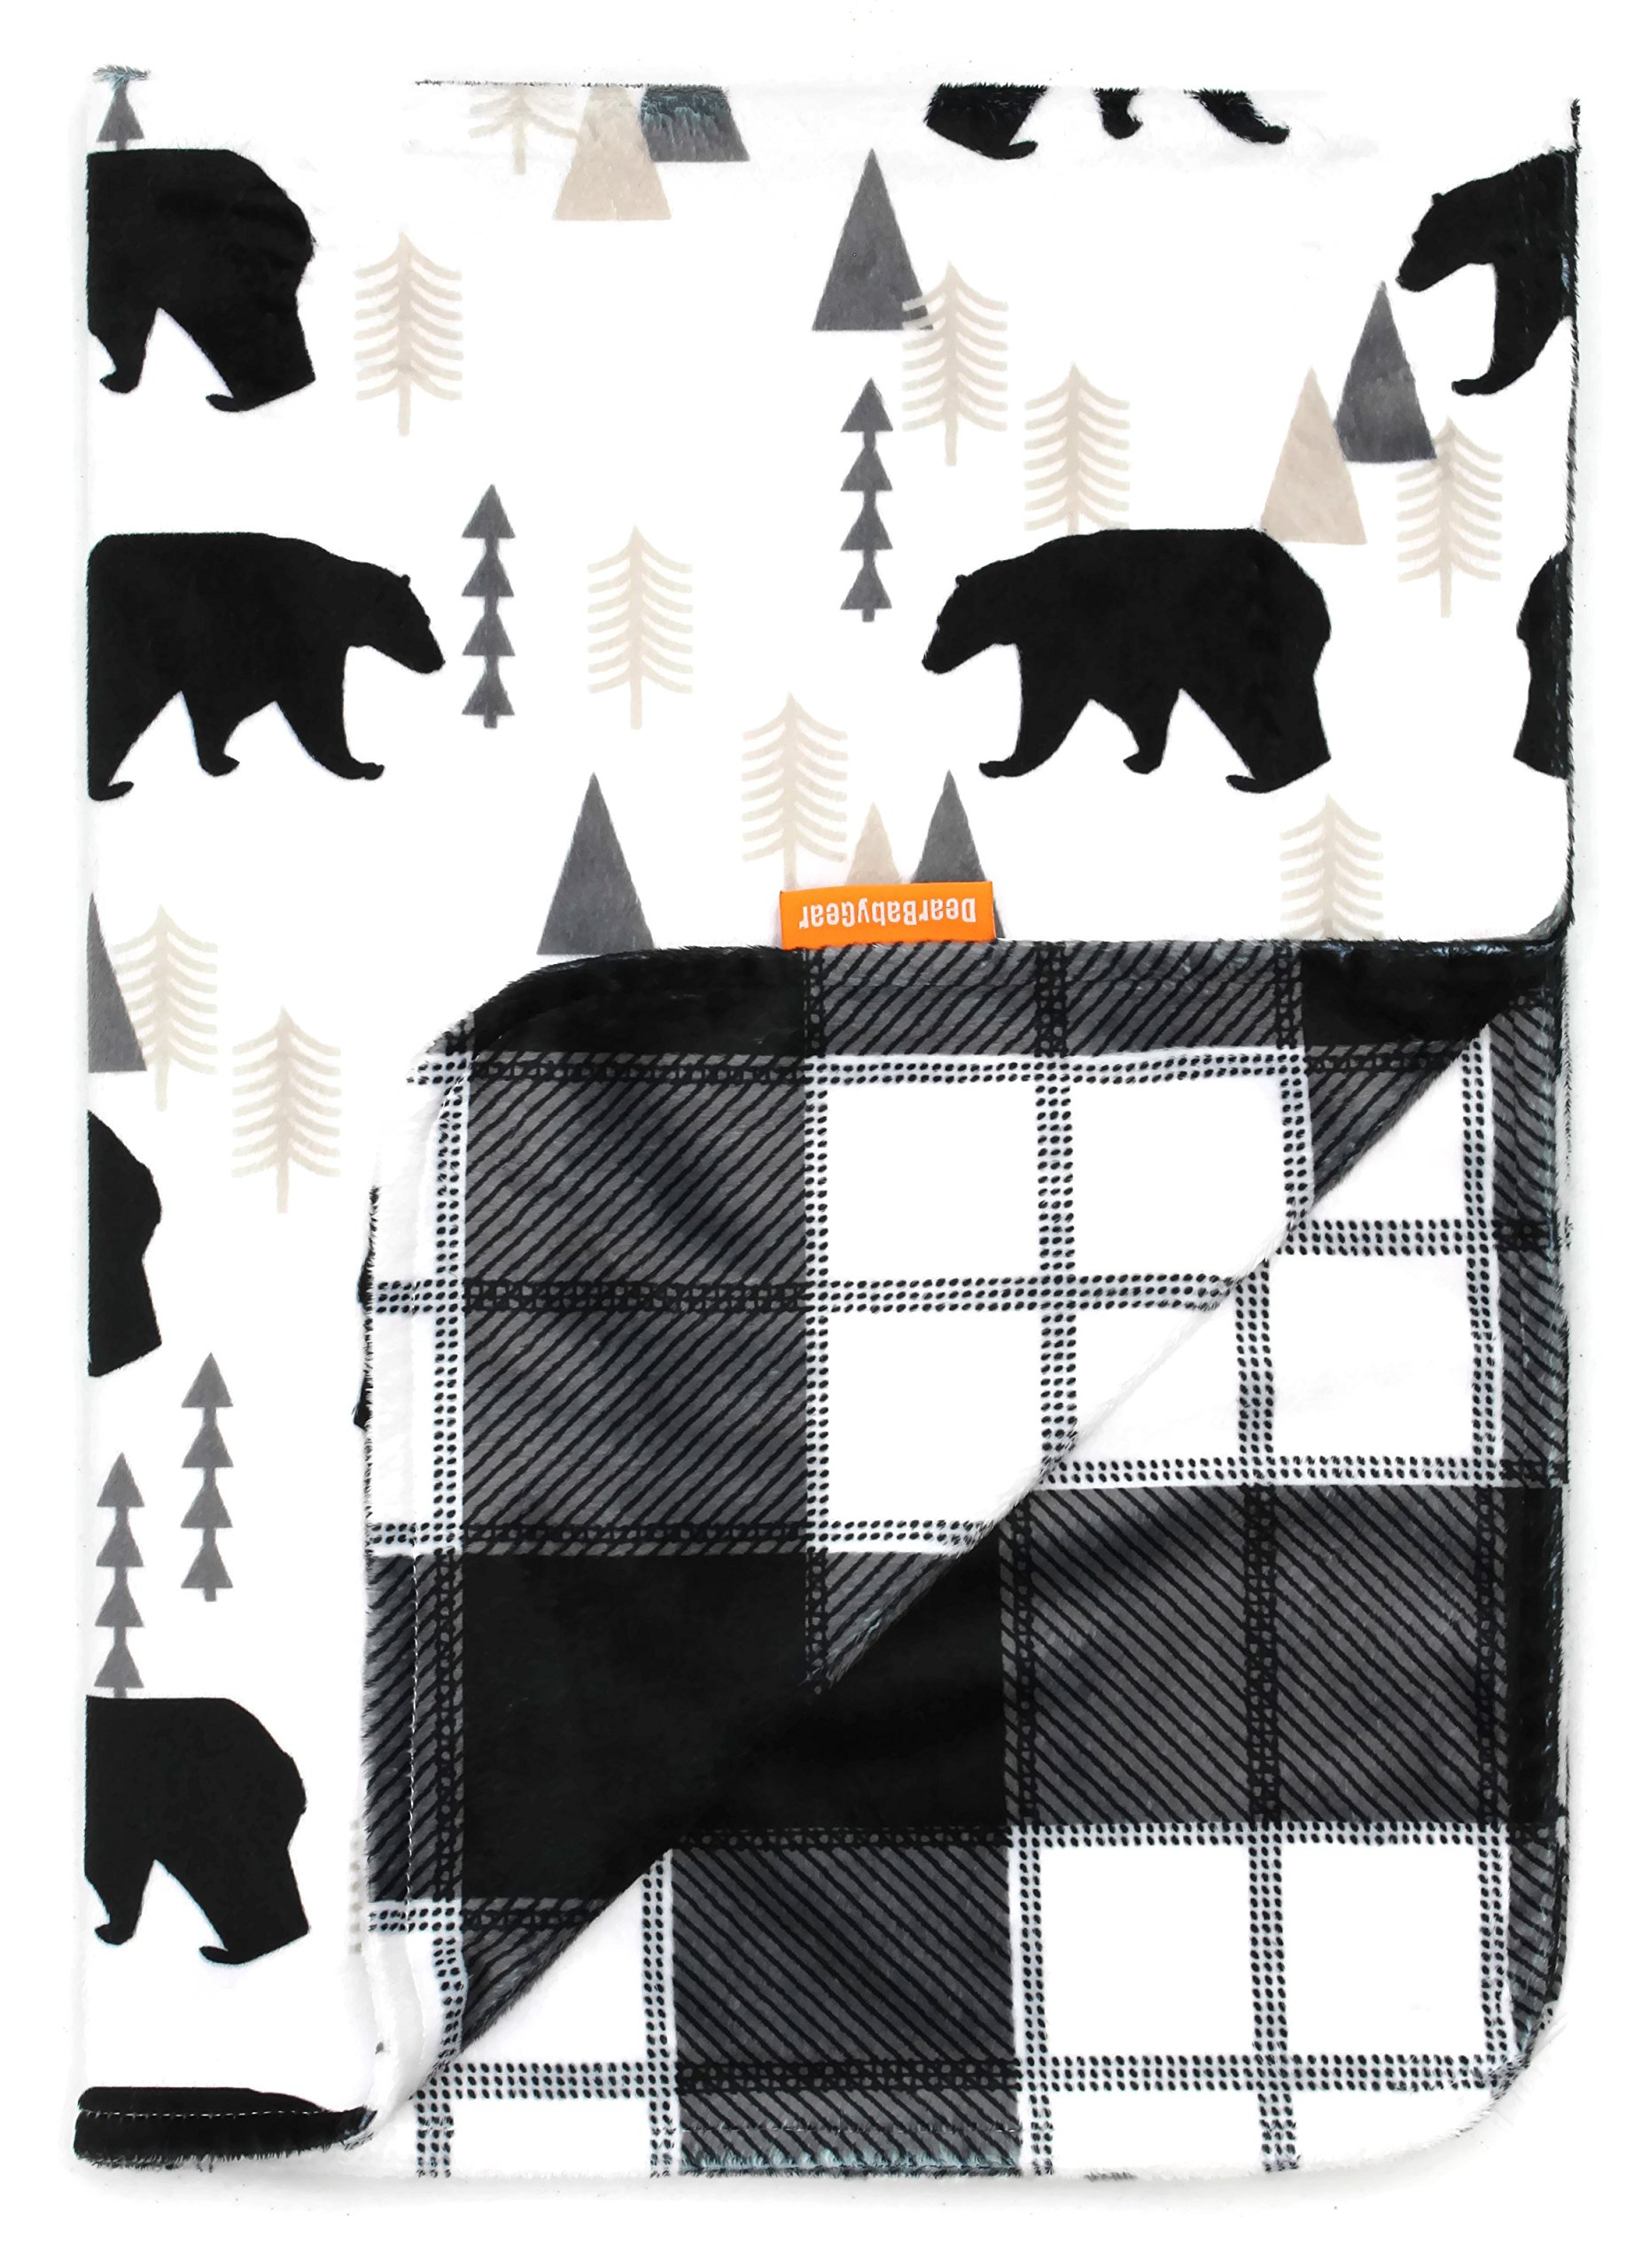 Dear Baby Gear Deluxe Reversible Baby Blankets, Custom Minky Print Black Bears, Black and Grey Plaid Minky by Dear Baby Gear